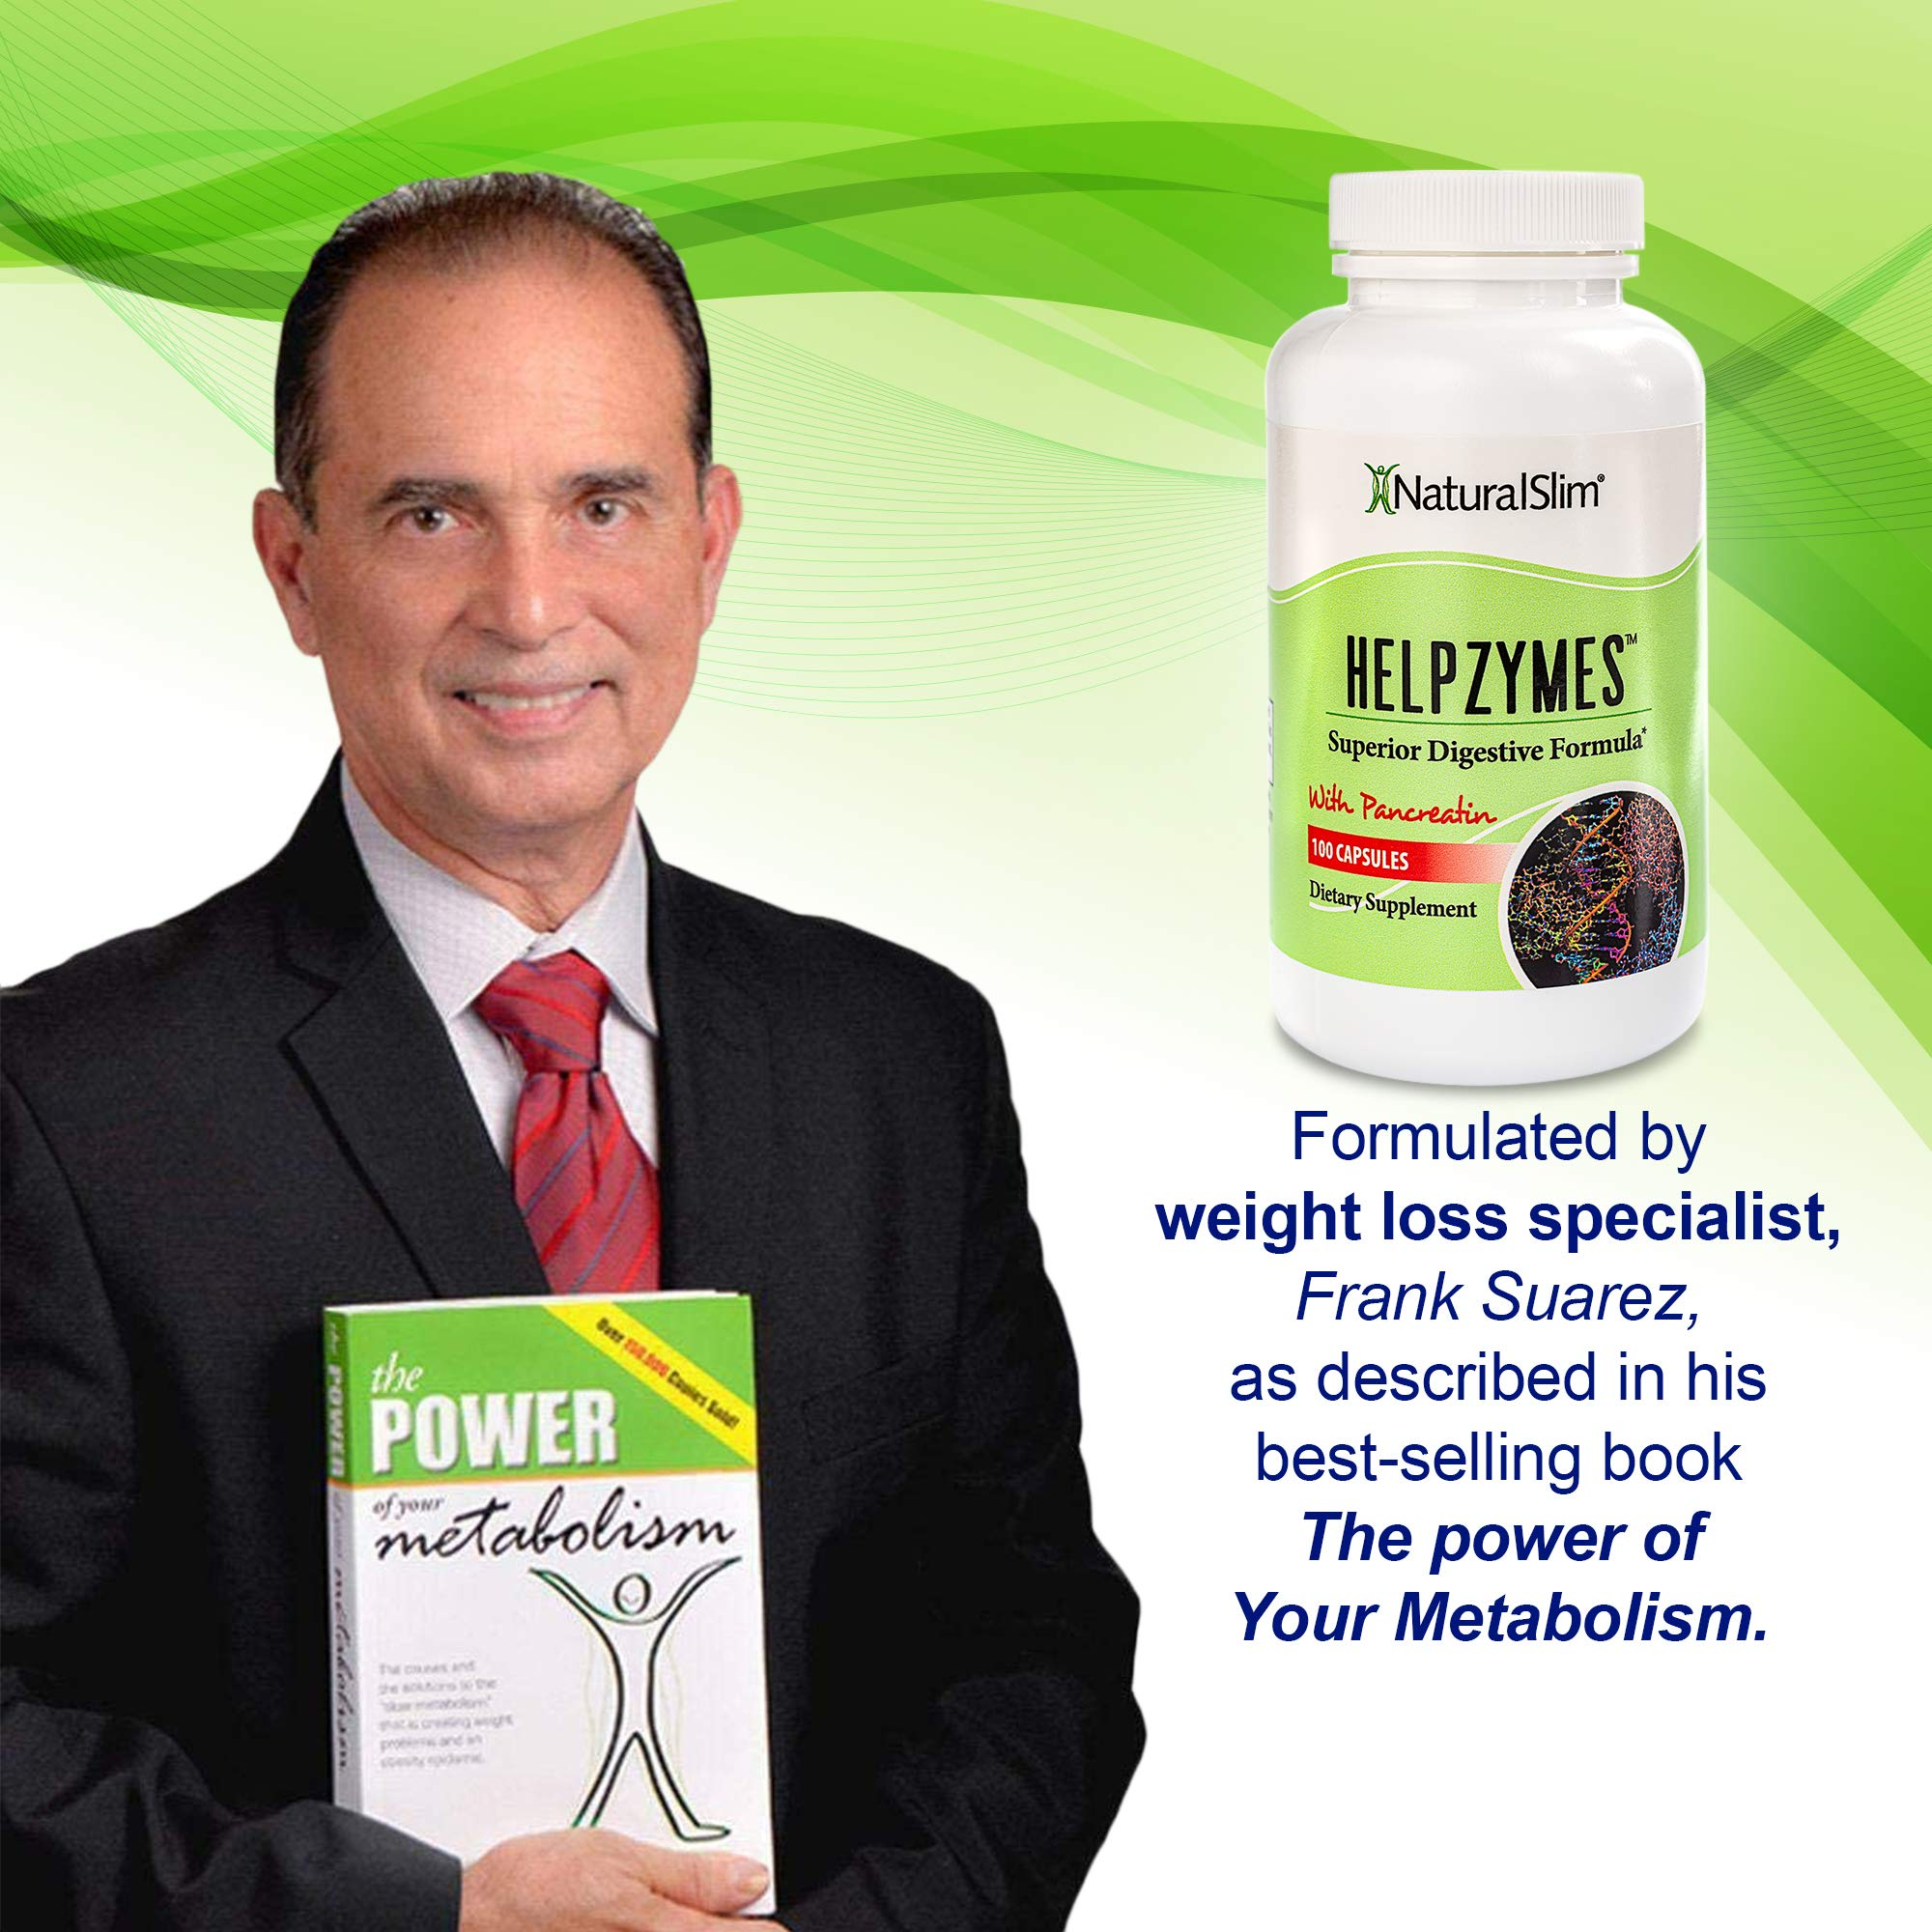 NaturalSlim Helpzymes - Premium Formula Digestive Enzymes for Ultra Digestion & Absorption w/ HLC Acid & Pancreatin - Metabolism Support Supplements - Gluten Free Constipation & Gas Relief - 100 Caps